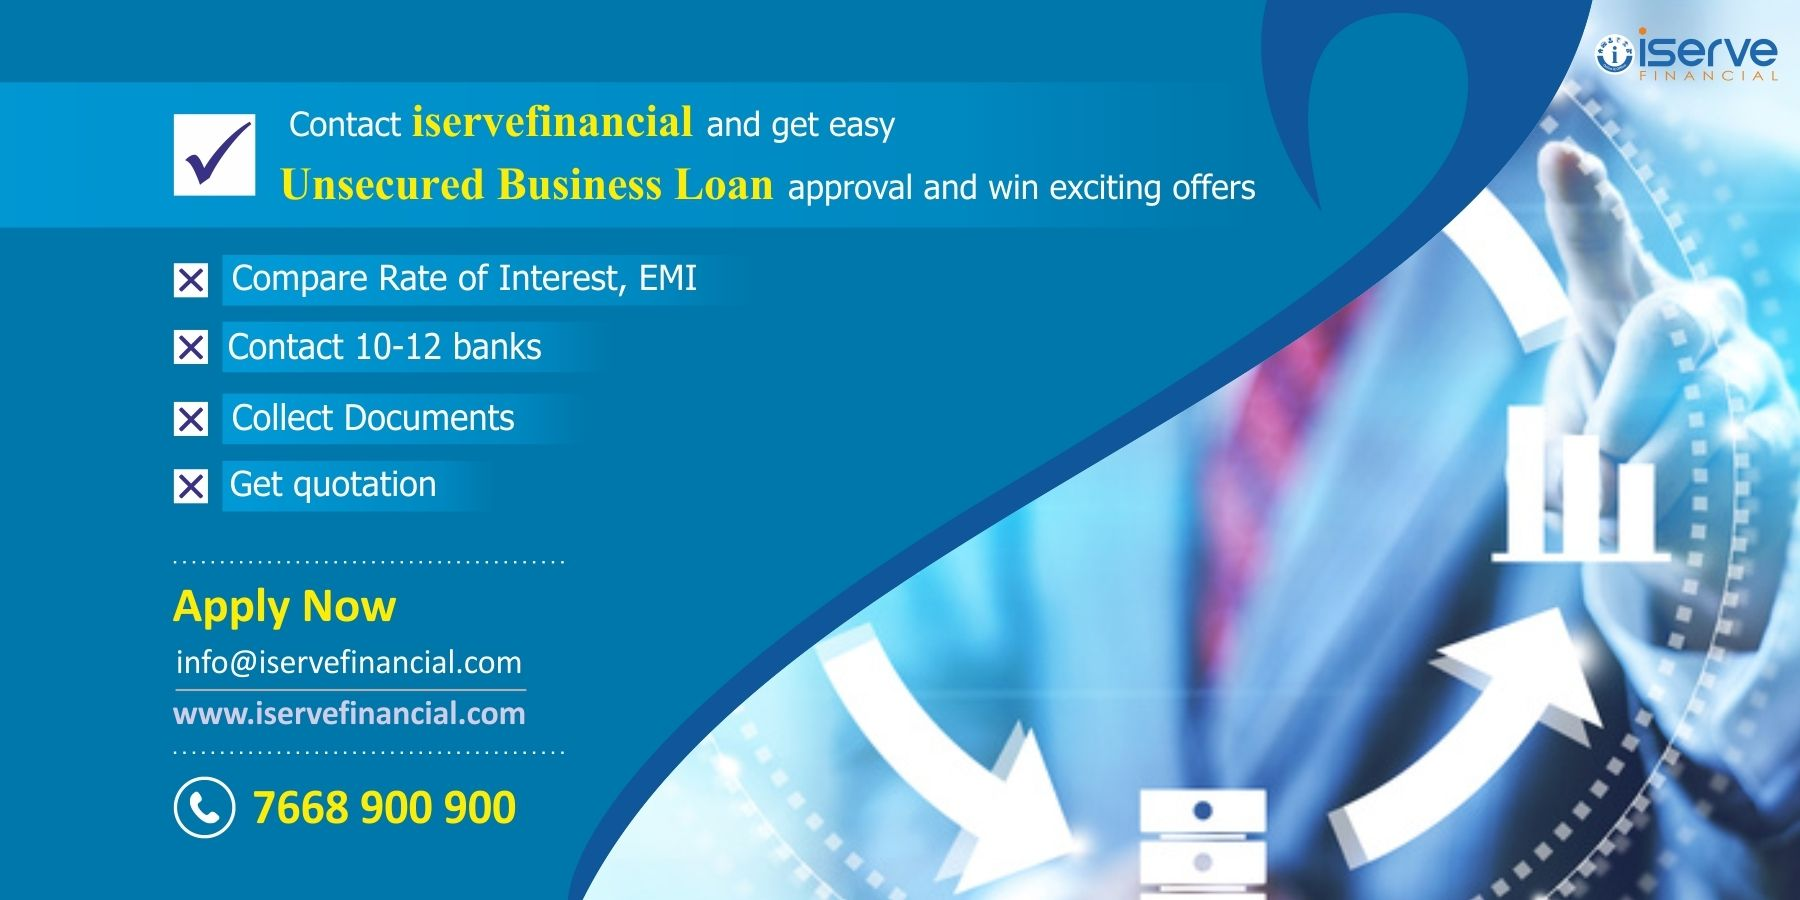 Iservefinancial Com Best Rates Offers In Home Loan Personal Loan Loan Against Property Cards In India Instant Loans Online Instant Loans Personal Loans